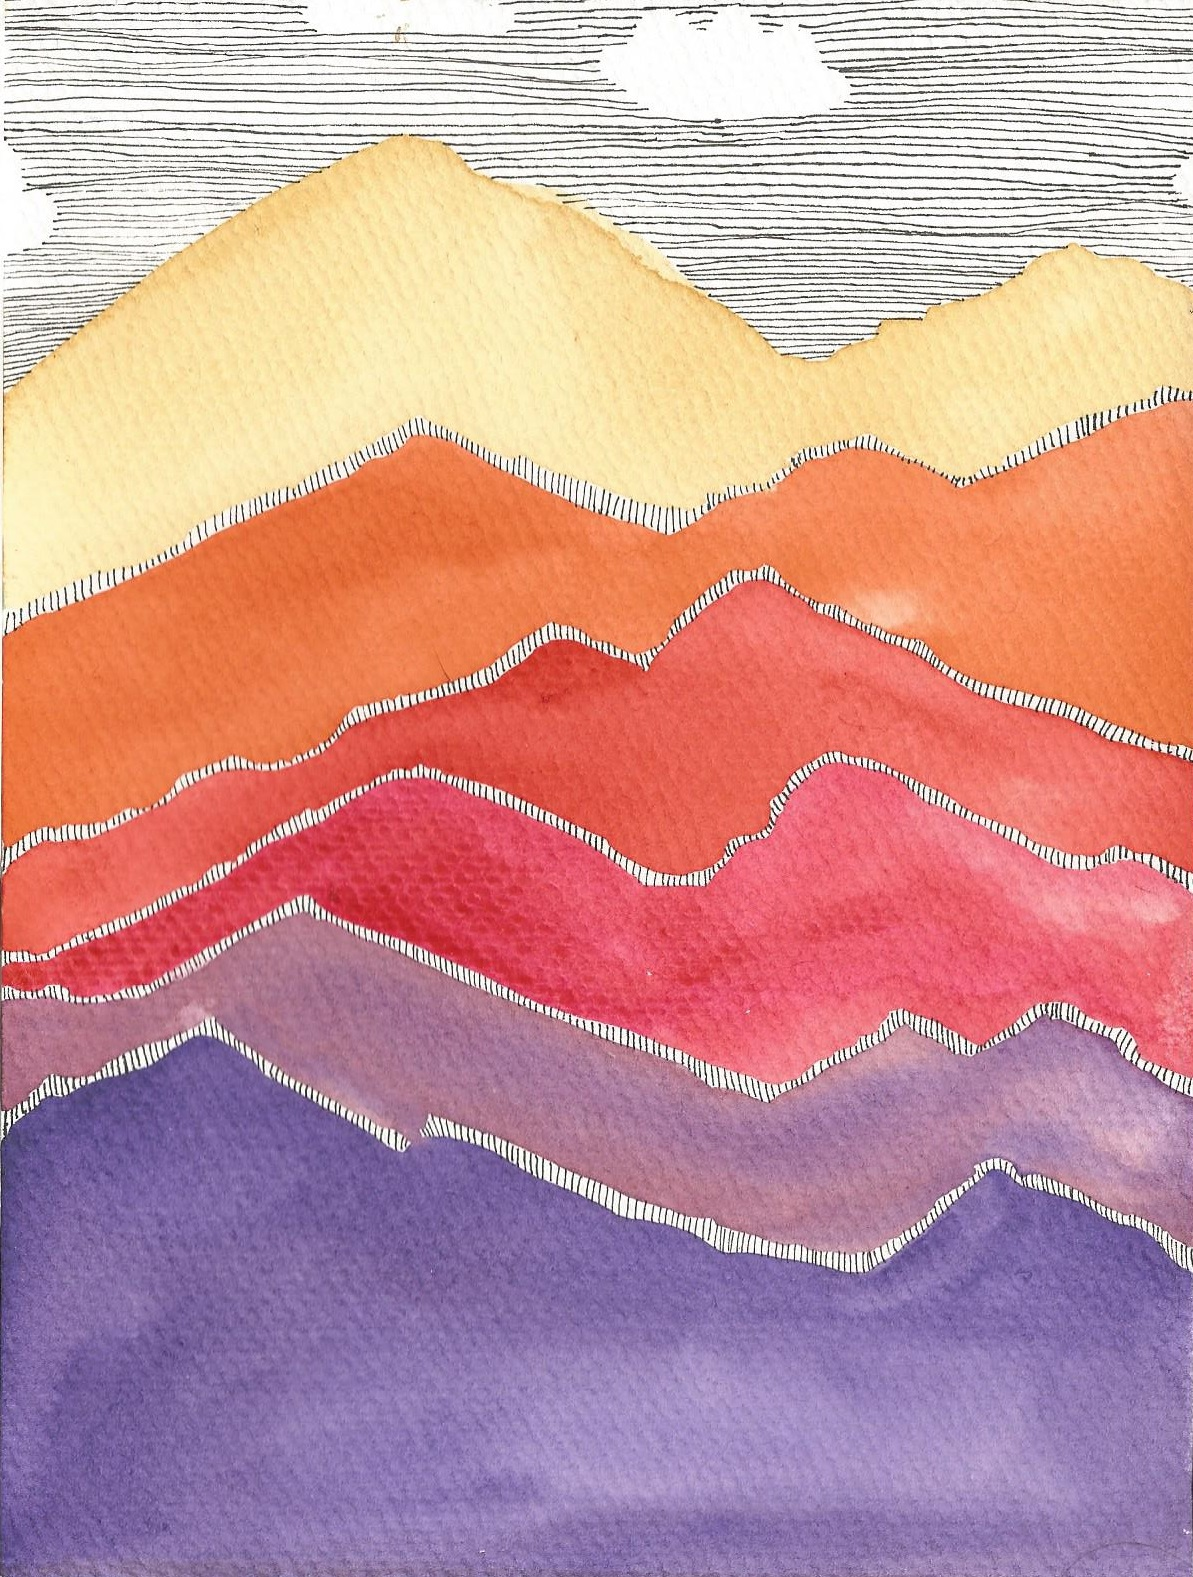 color mountains.jpg